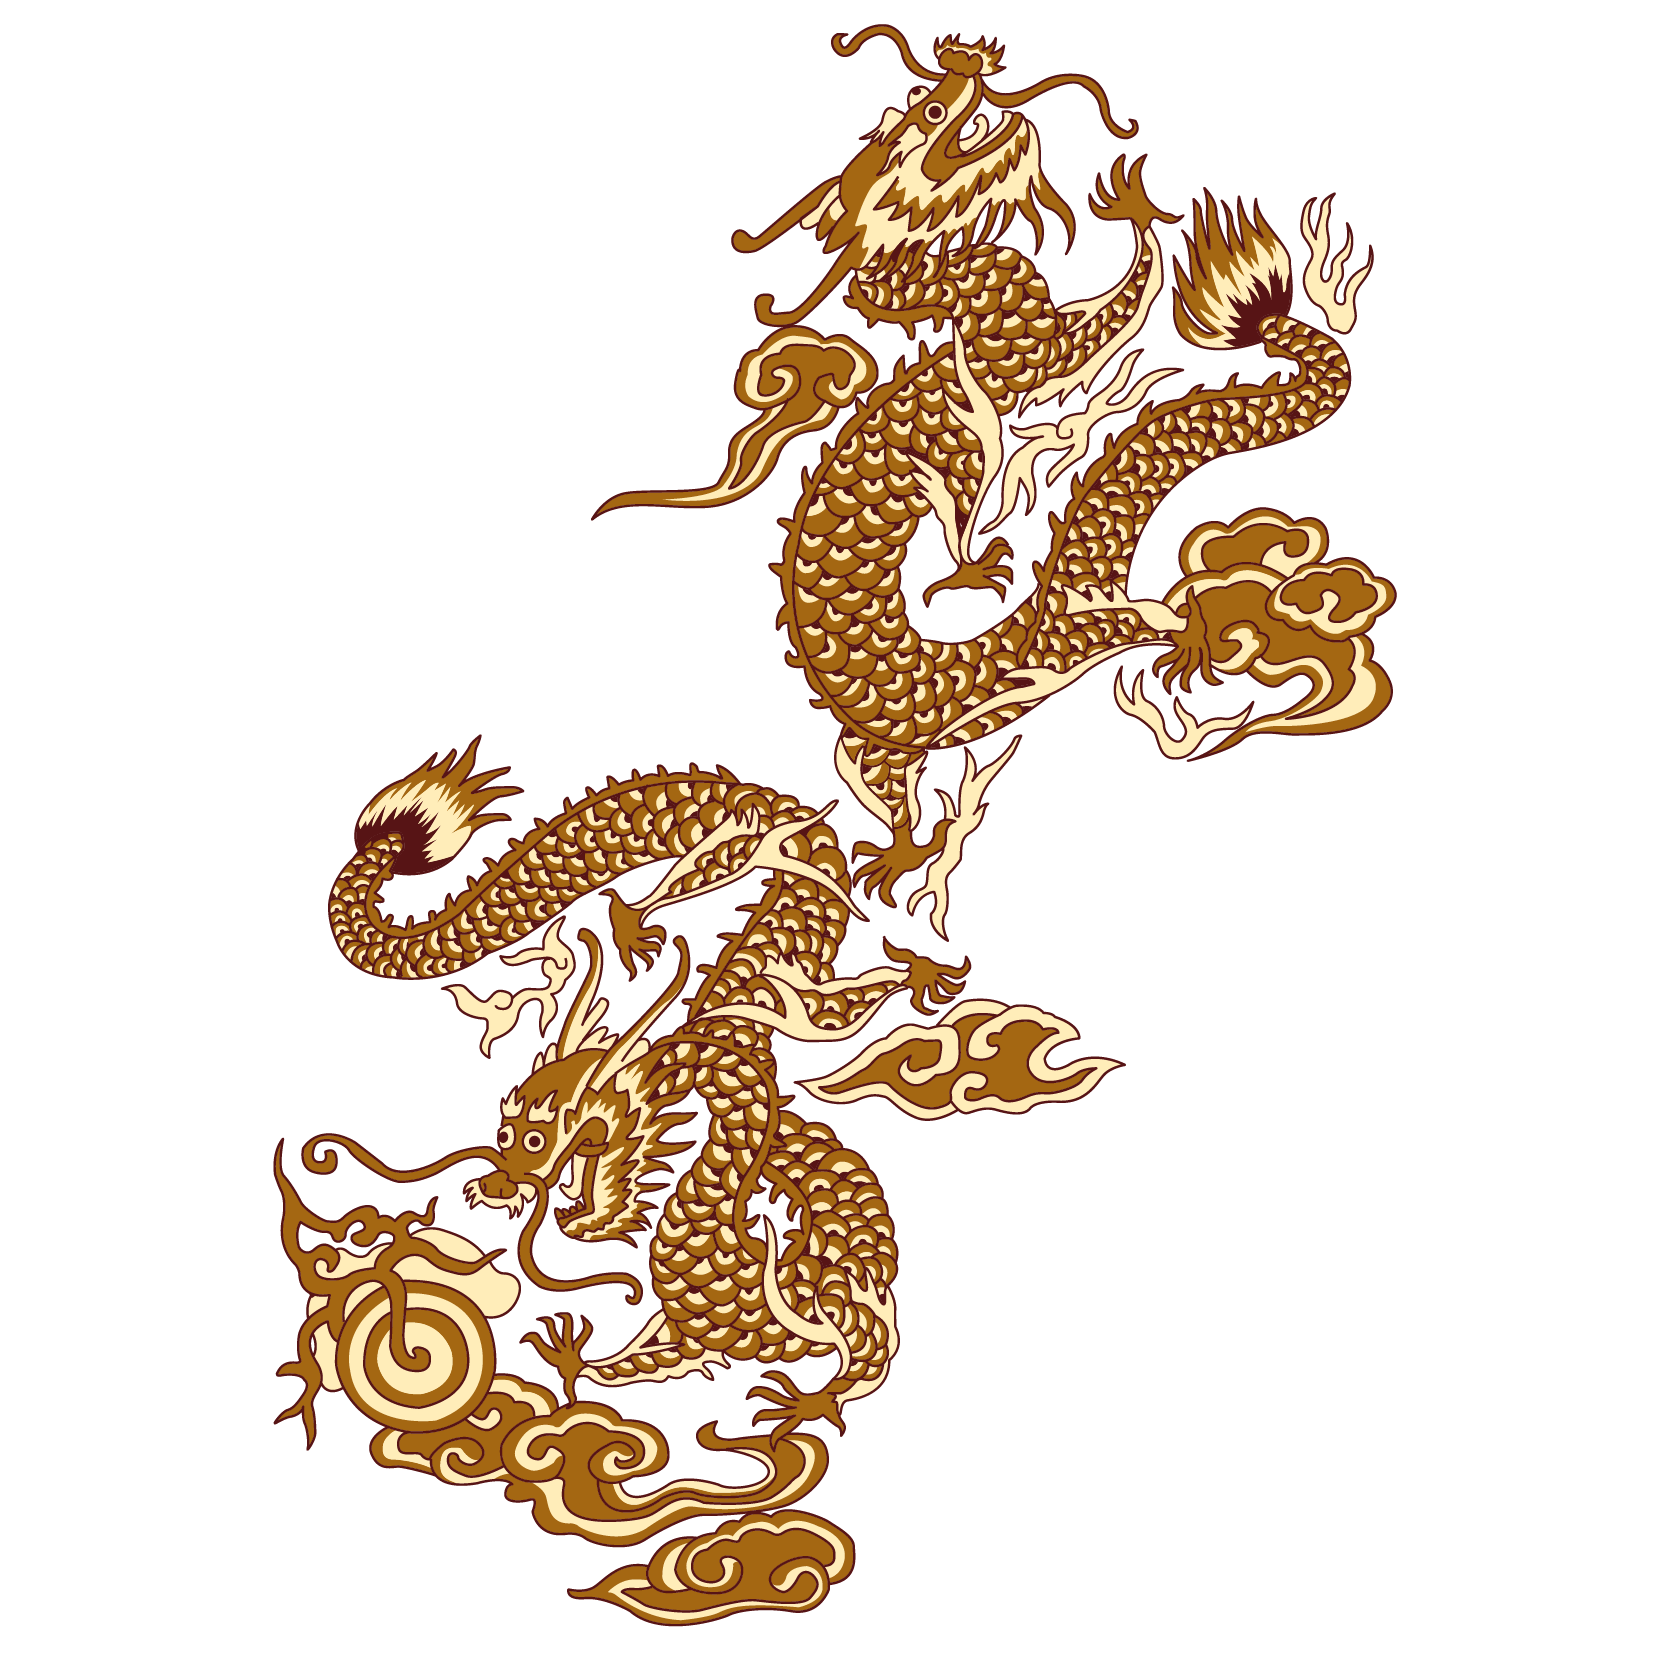 China transparent full body. Chinese dragon golden wind